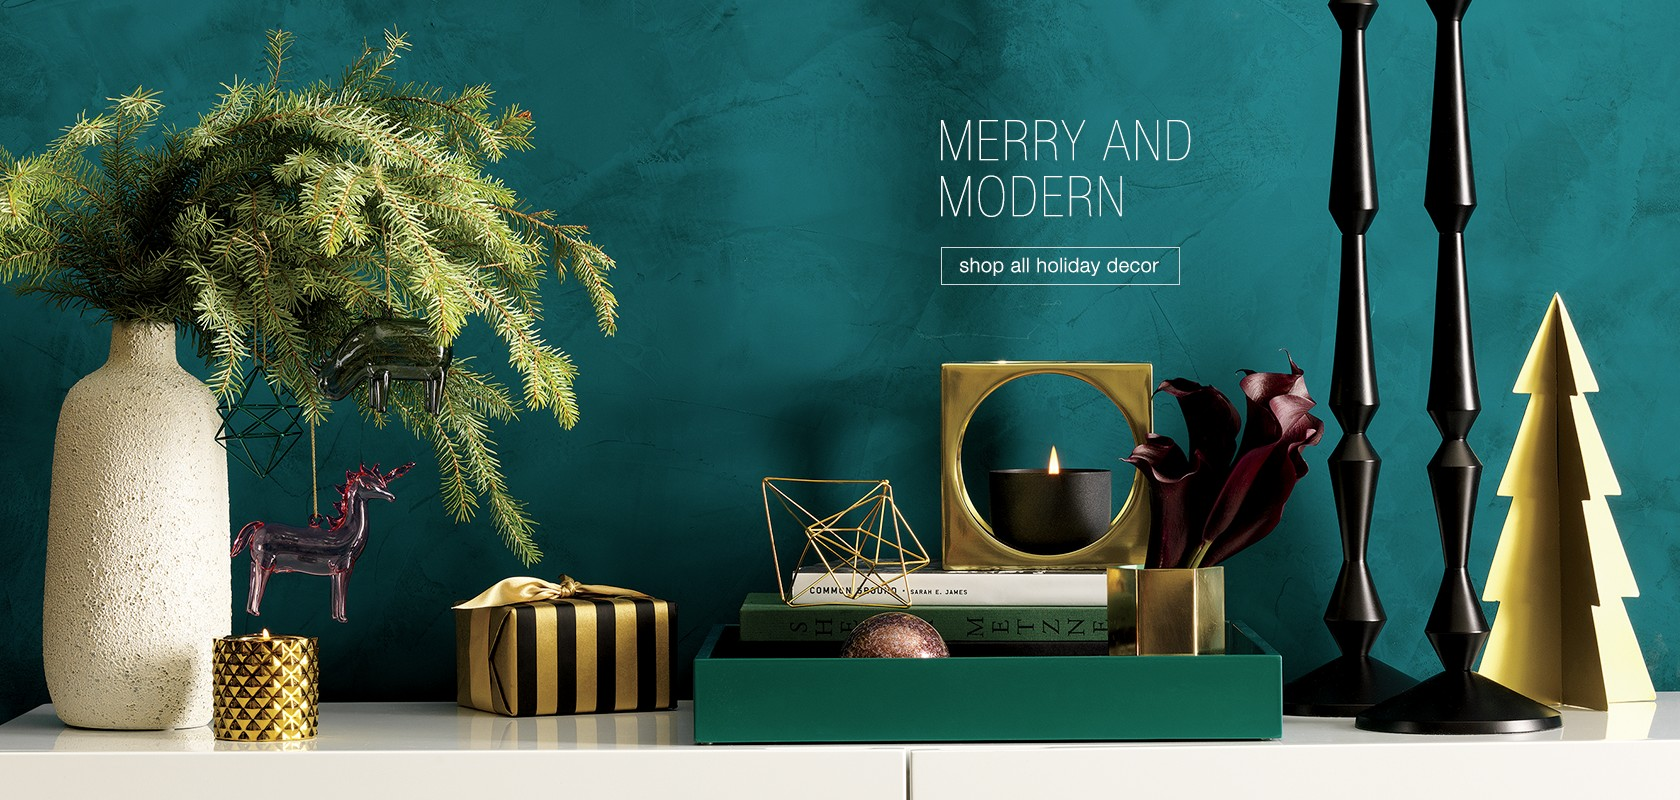 merry and modern, holiday decor